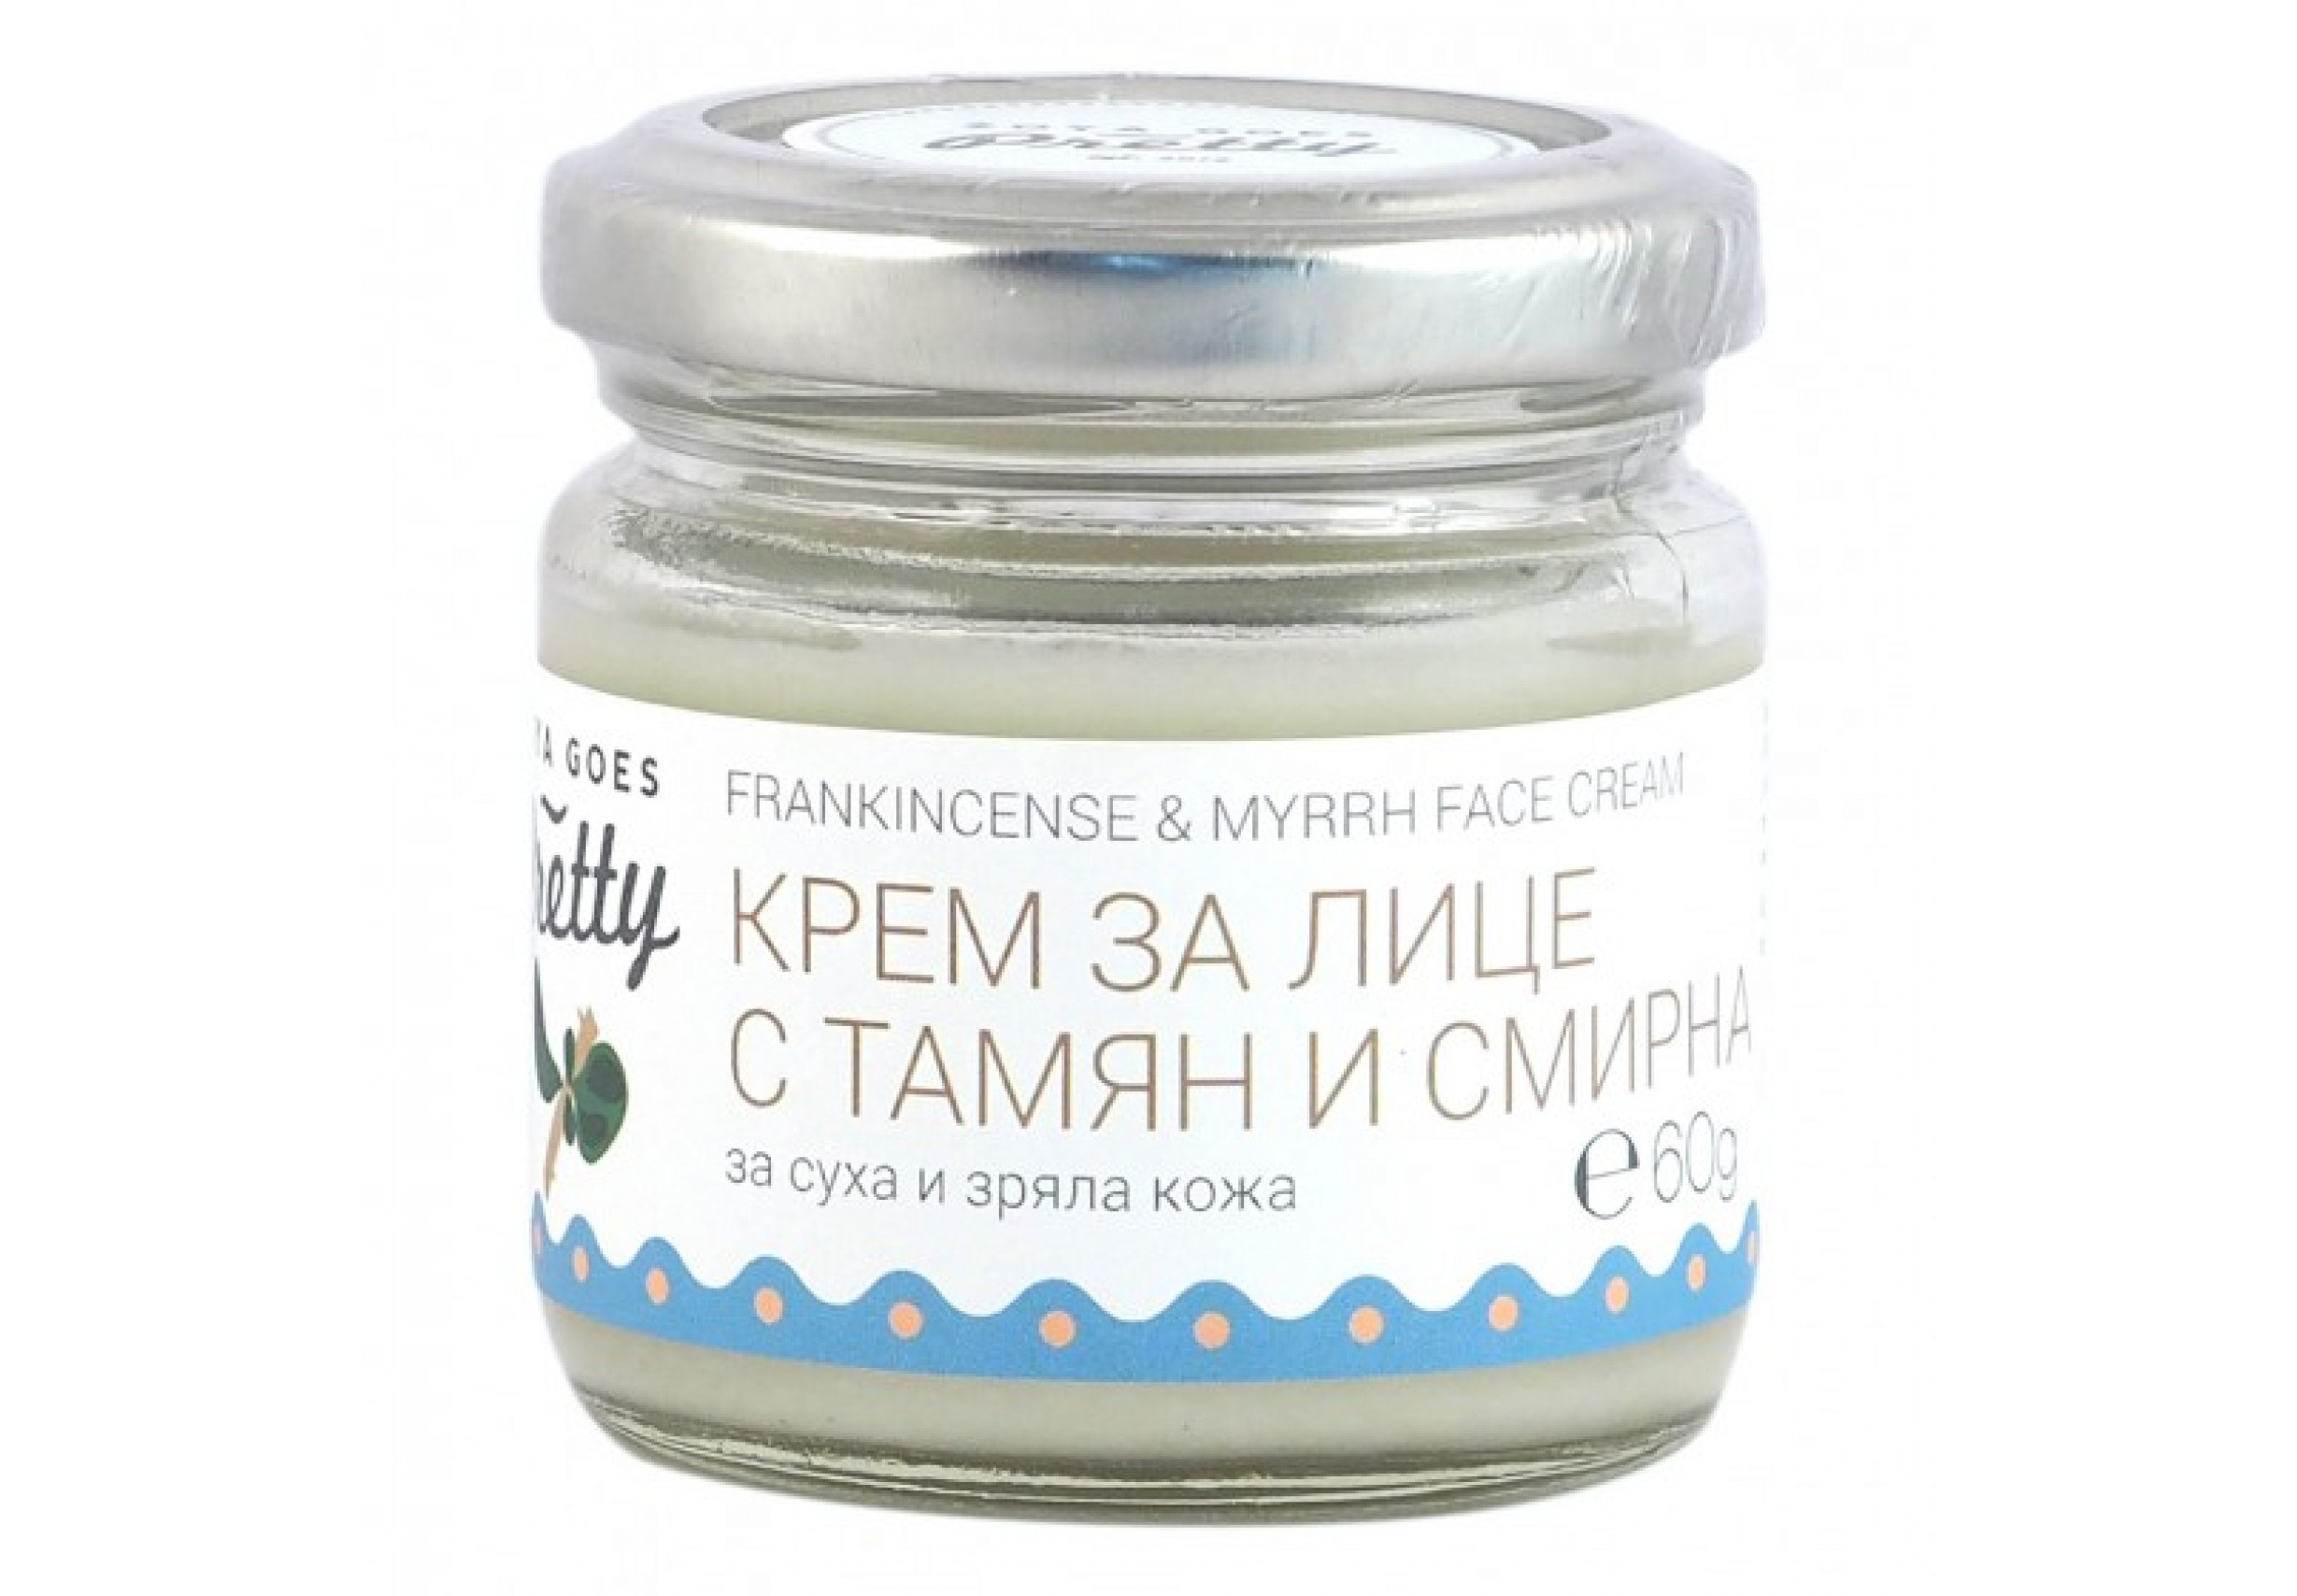 Face cream for dry and aging skin 60 g